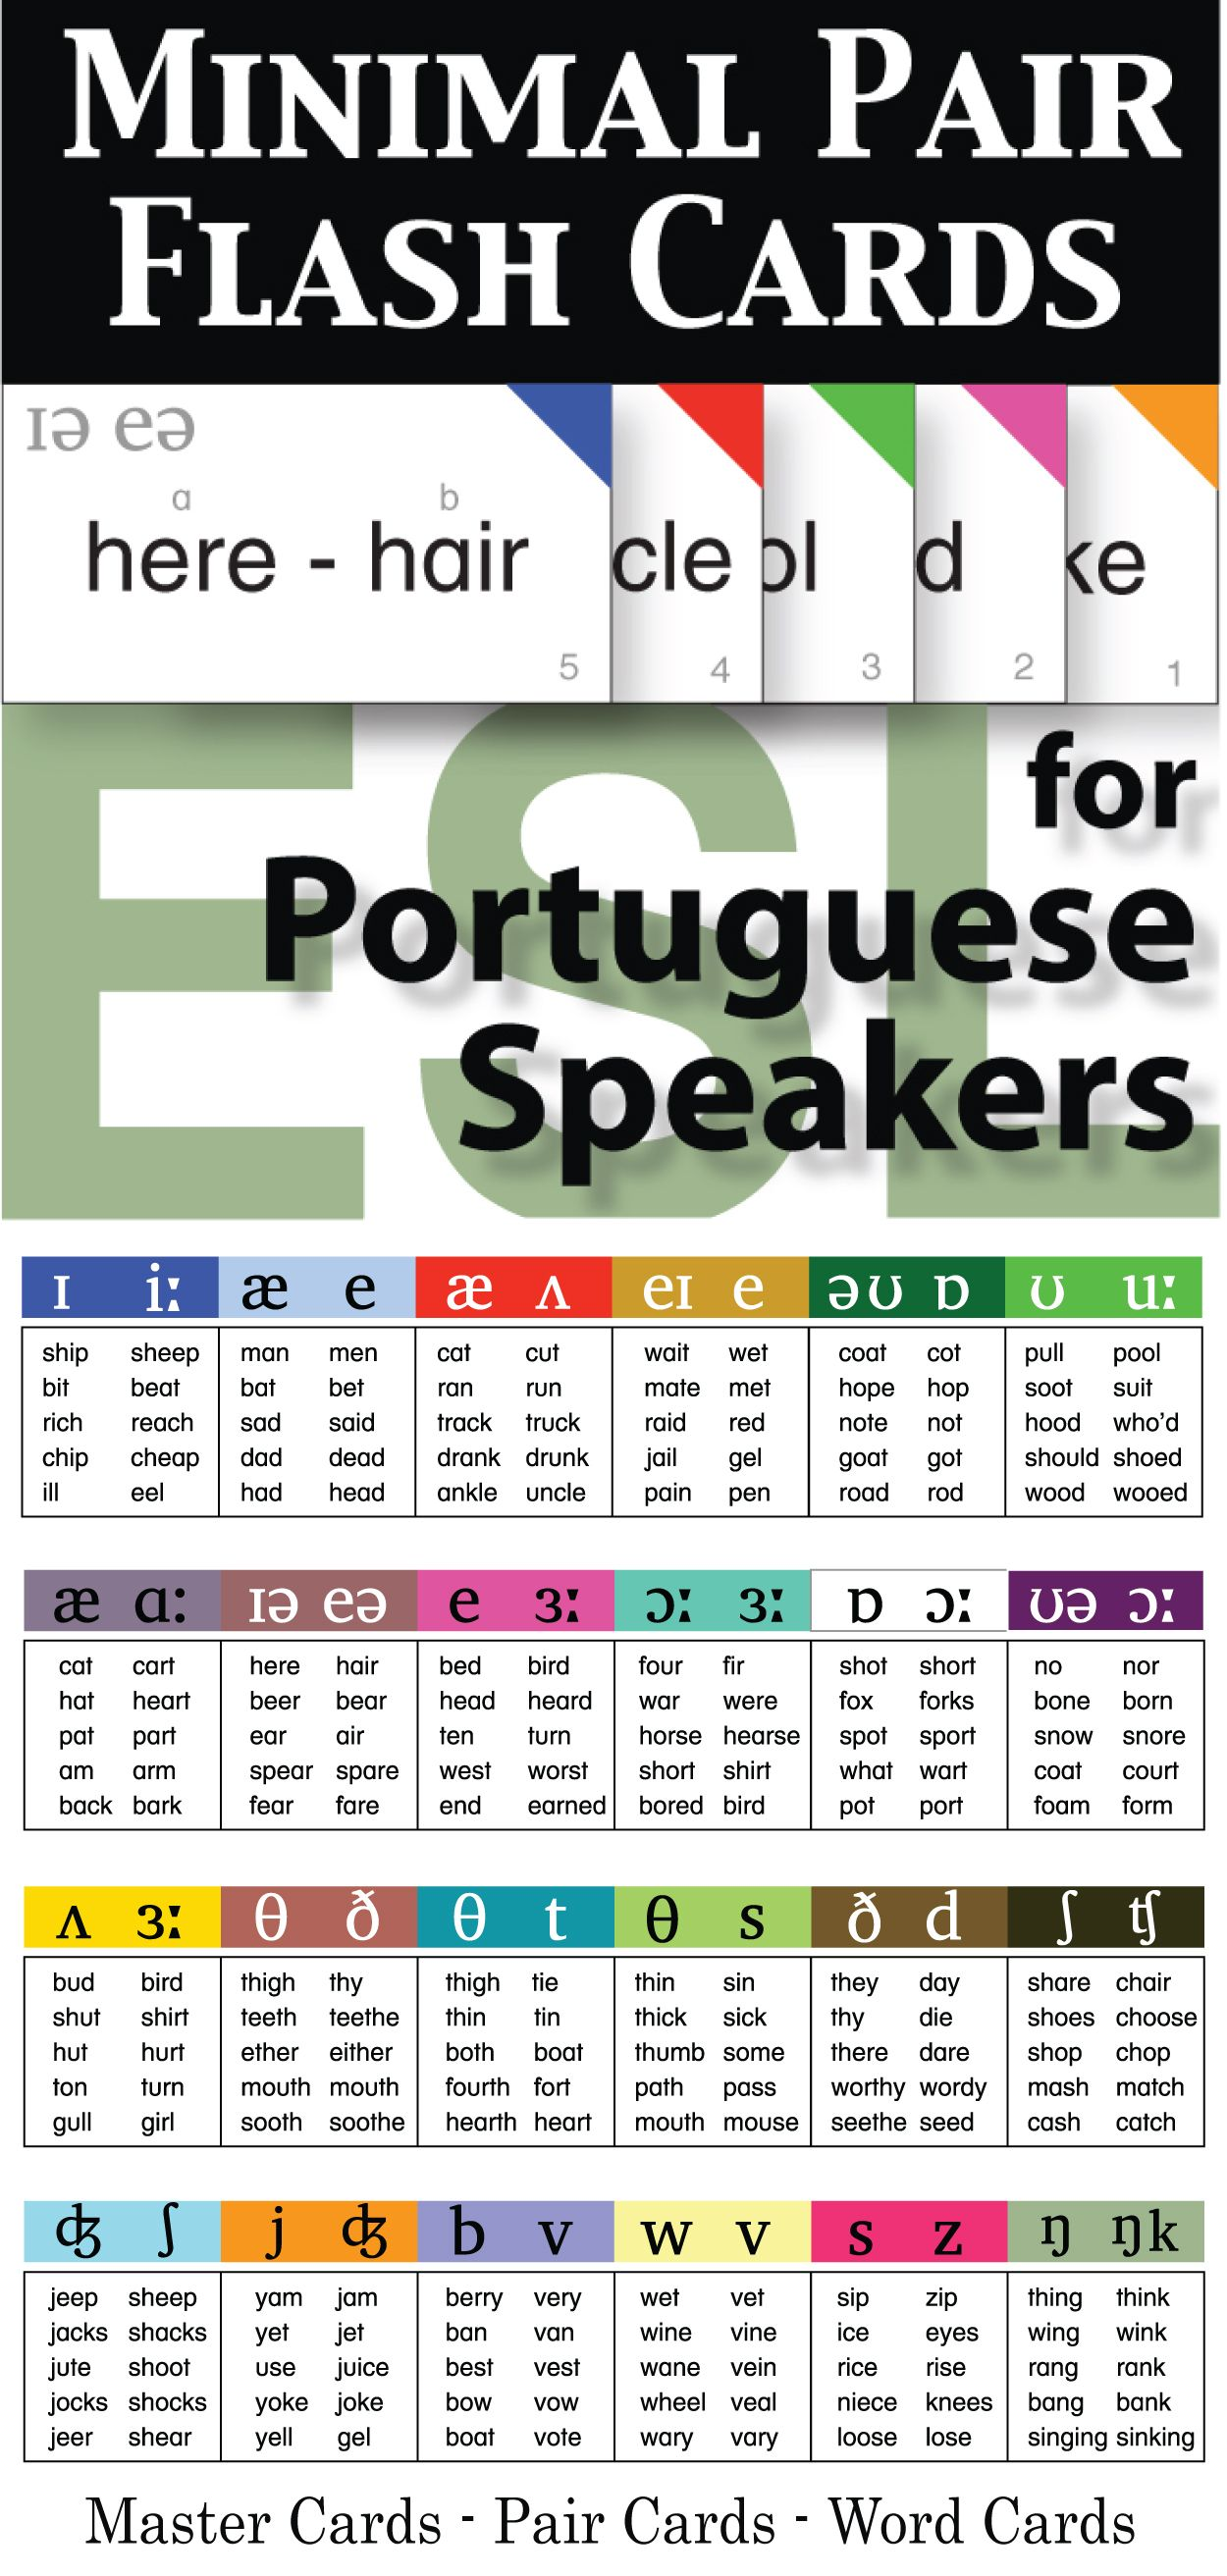 Minimal Pair Flash Cards For Portuguese Speakers In